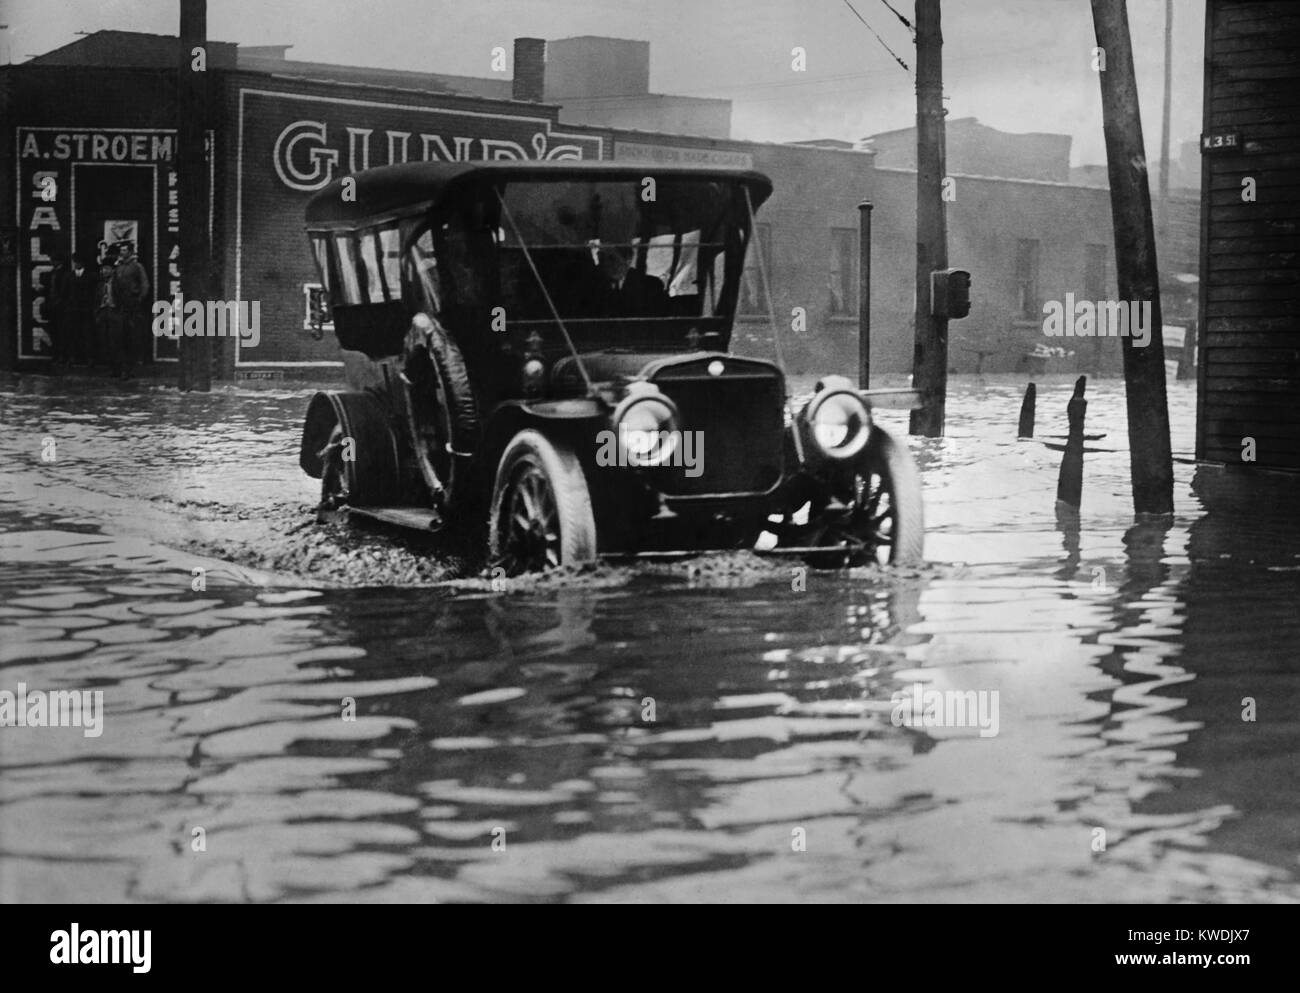 An automobile drives through axel high water on a flooded Cleveland street, probably in 1913. The early cars were - Stock Image